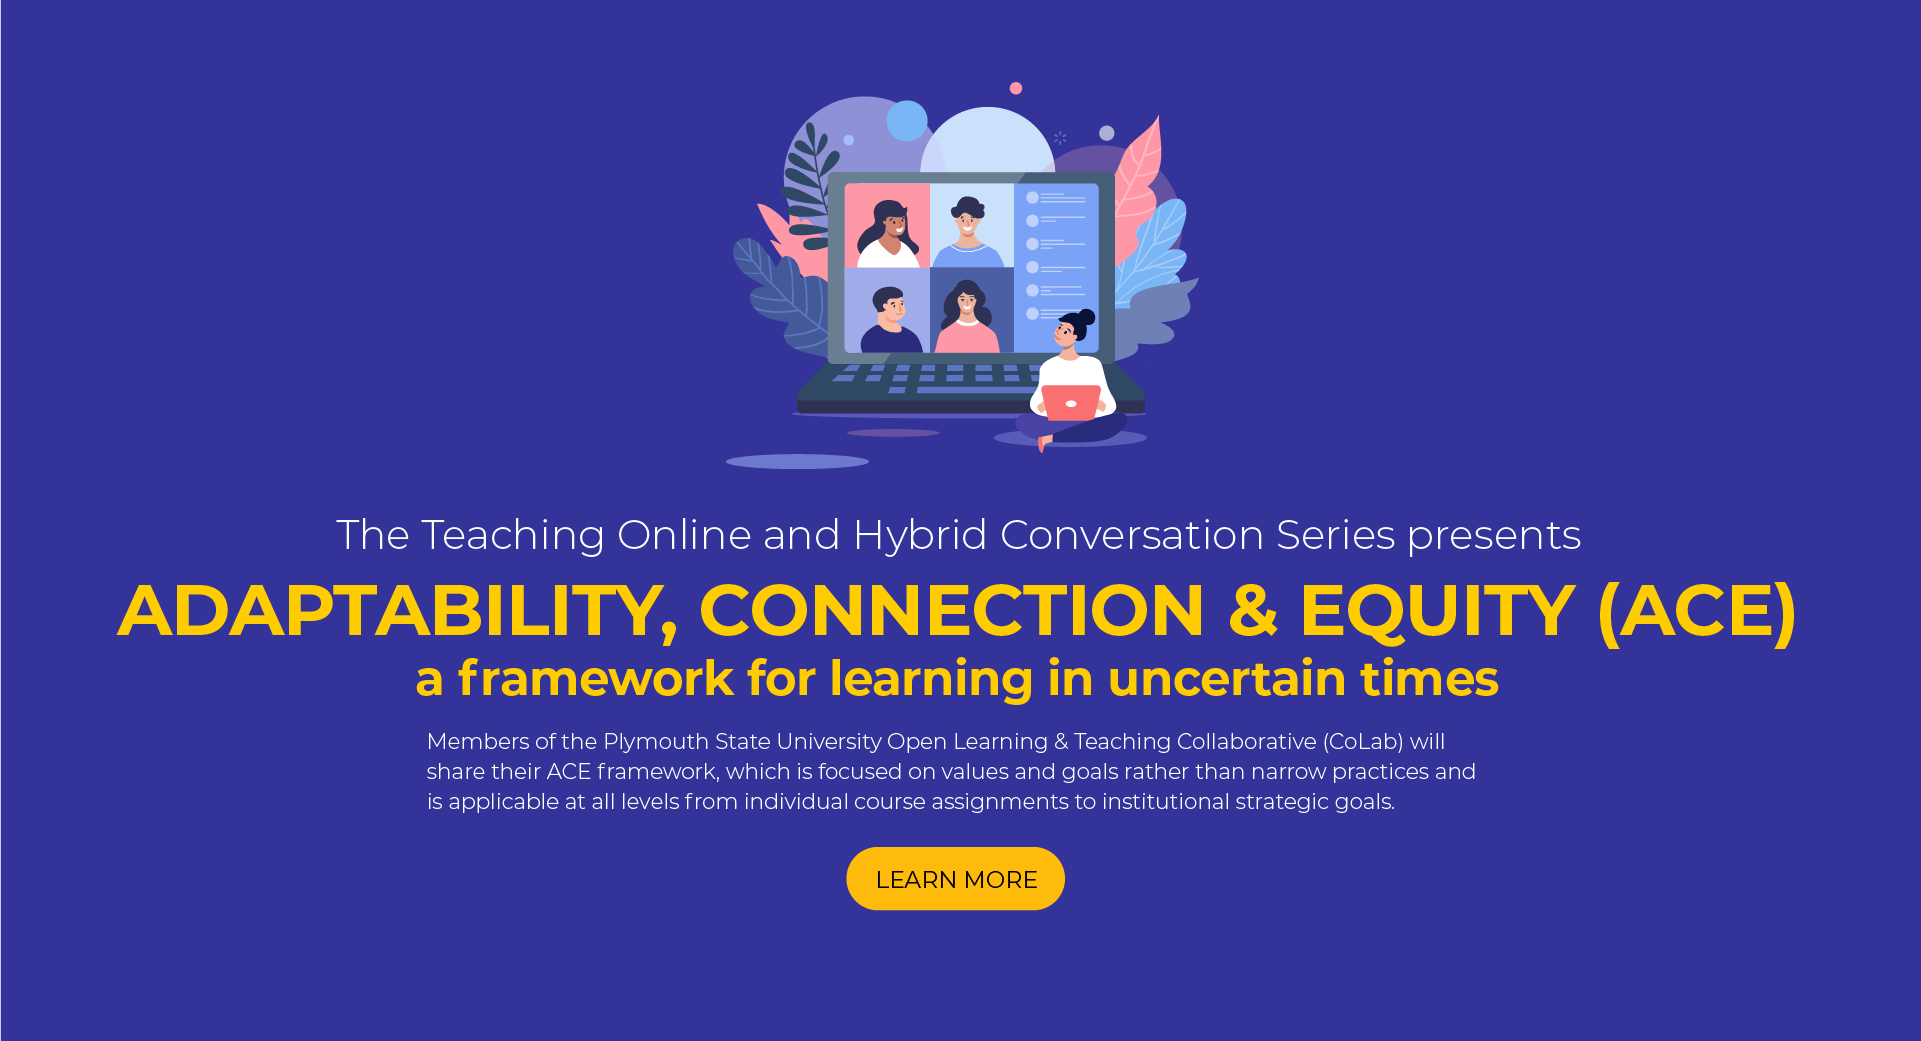 Register for the Adaptability, Connection & Equity (ACE) workshop, a framework for learning in uncertain times